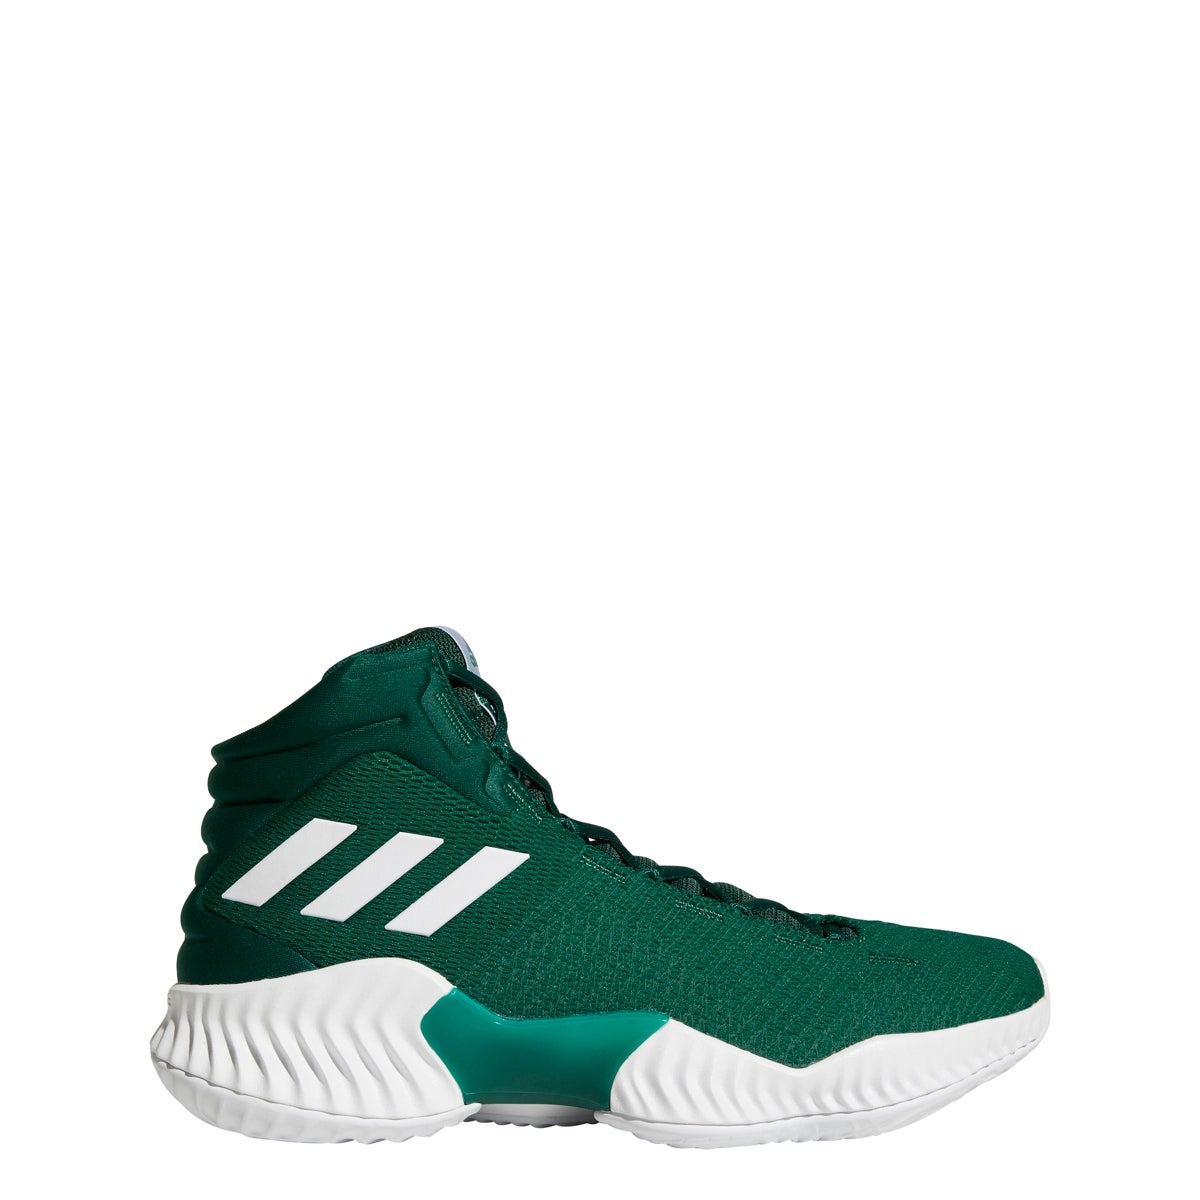 3f3fcaba Adidas Originals Men's Pro Bounce 2018 Basketball Shoe